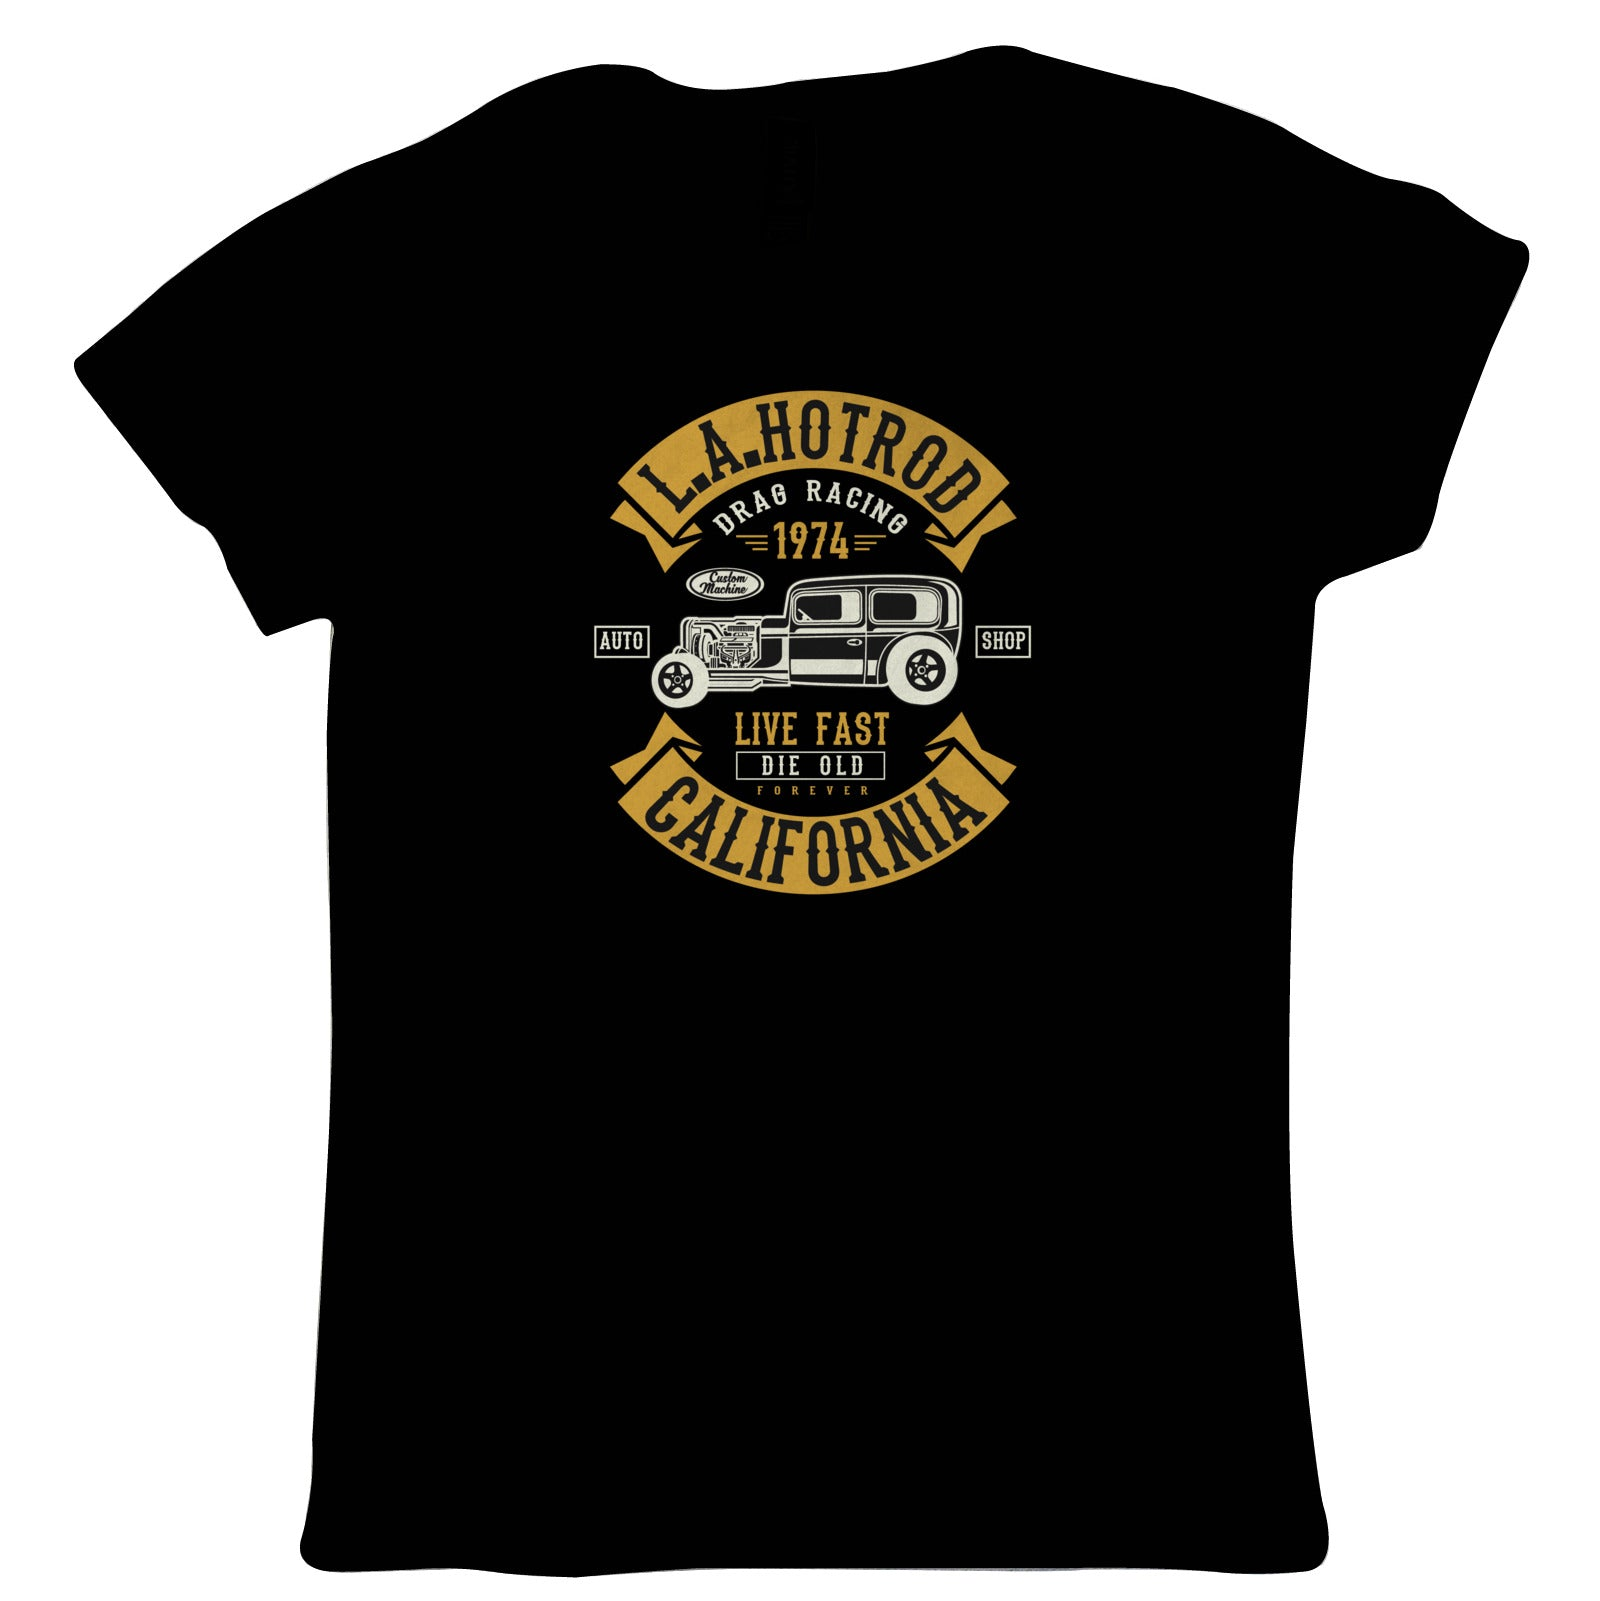 LA Hot Rod California | Funny Women's T-Shirt |Looking Good Old Handsome Hotrod Classic Racer Race Confidence Hot Rod Car | Womens T Shirt